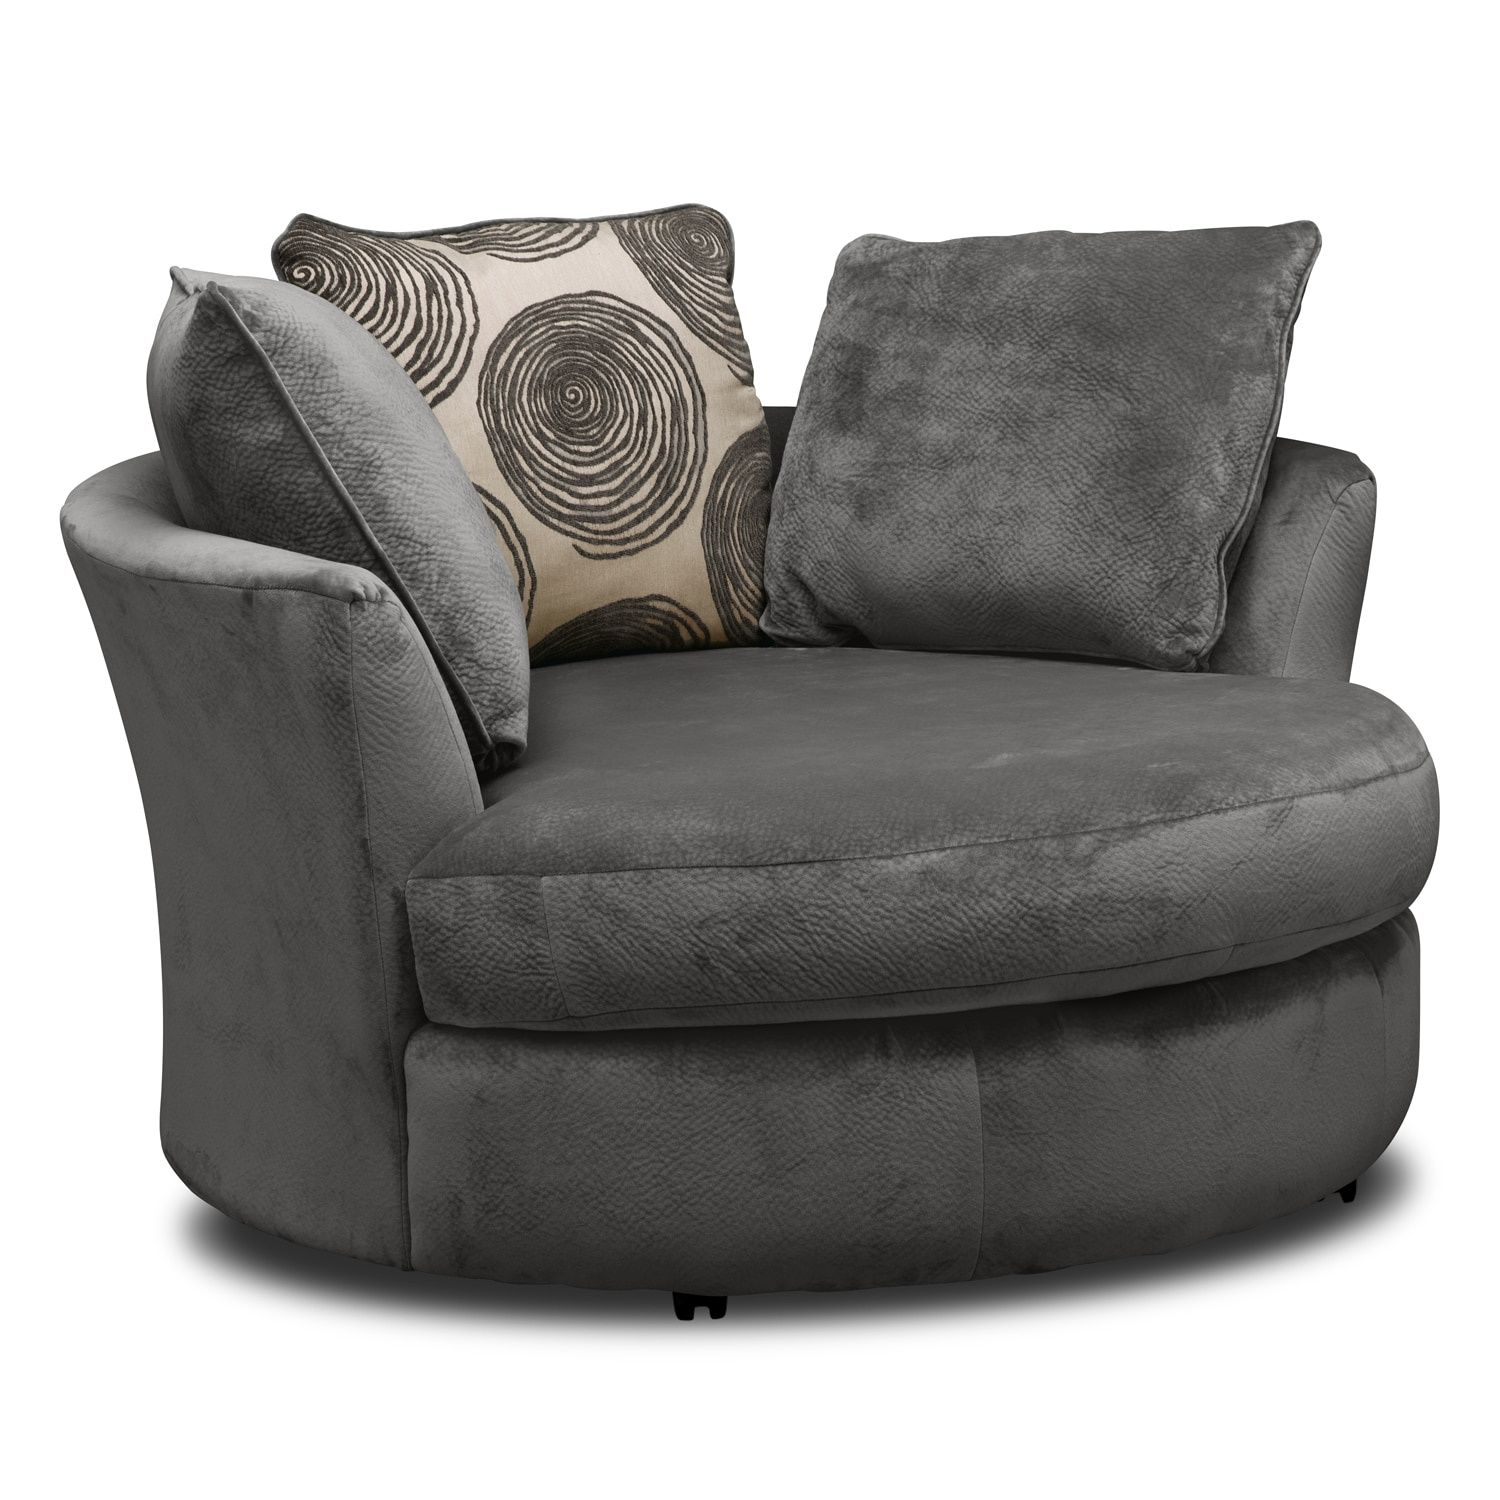 Cordelle Swivel Chair   Gray ...